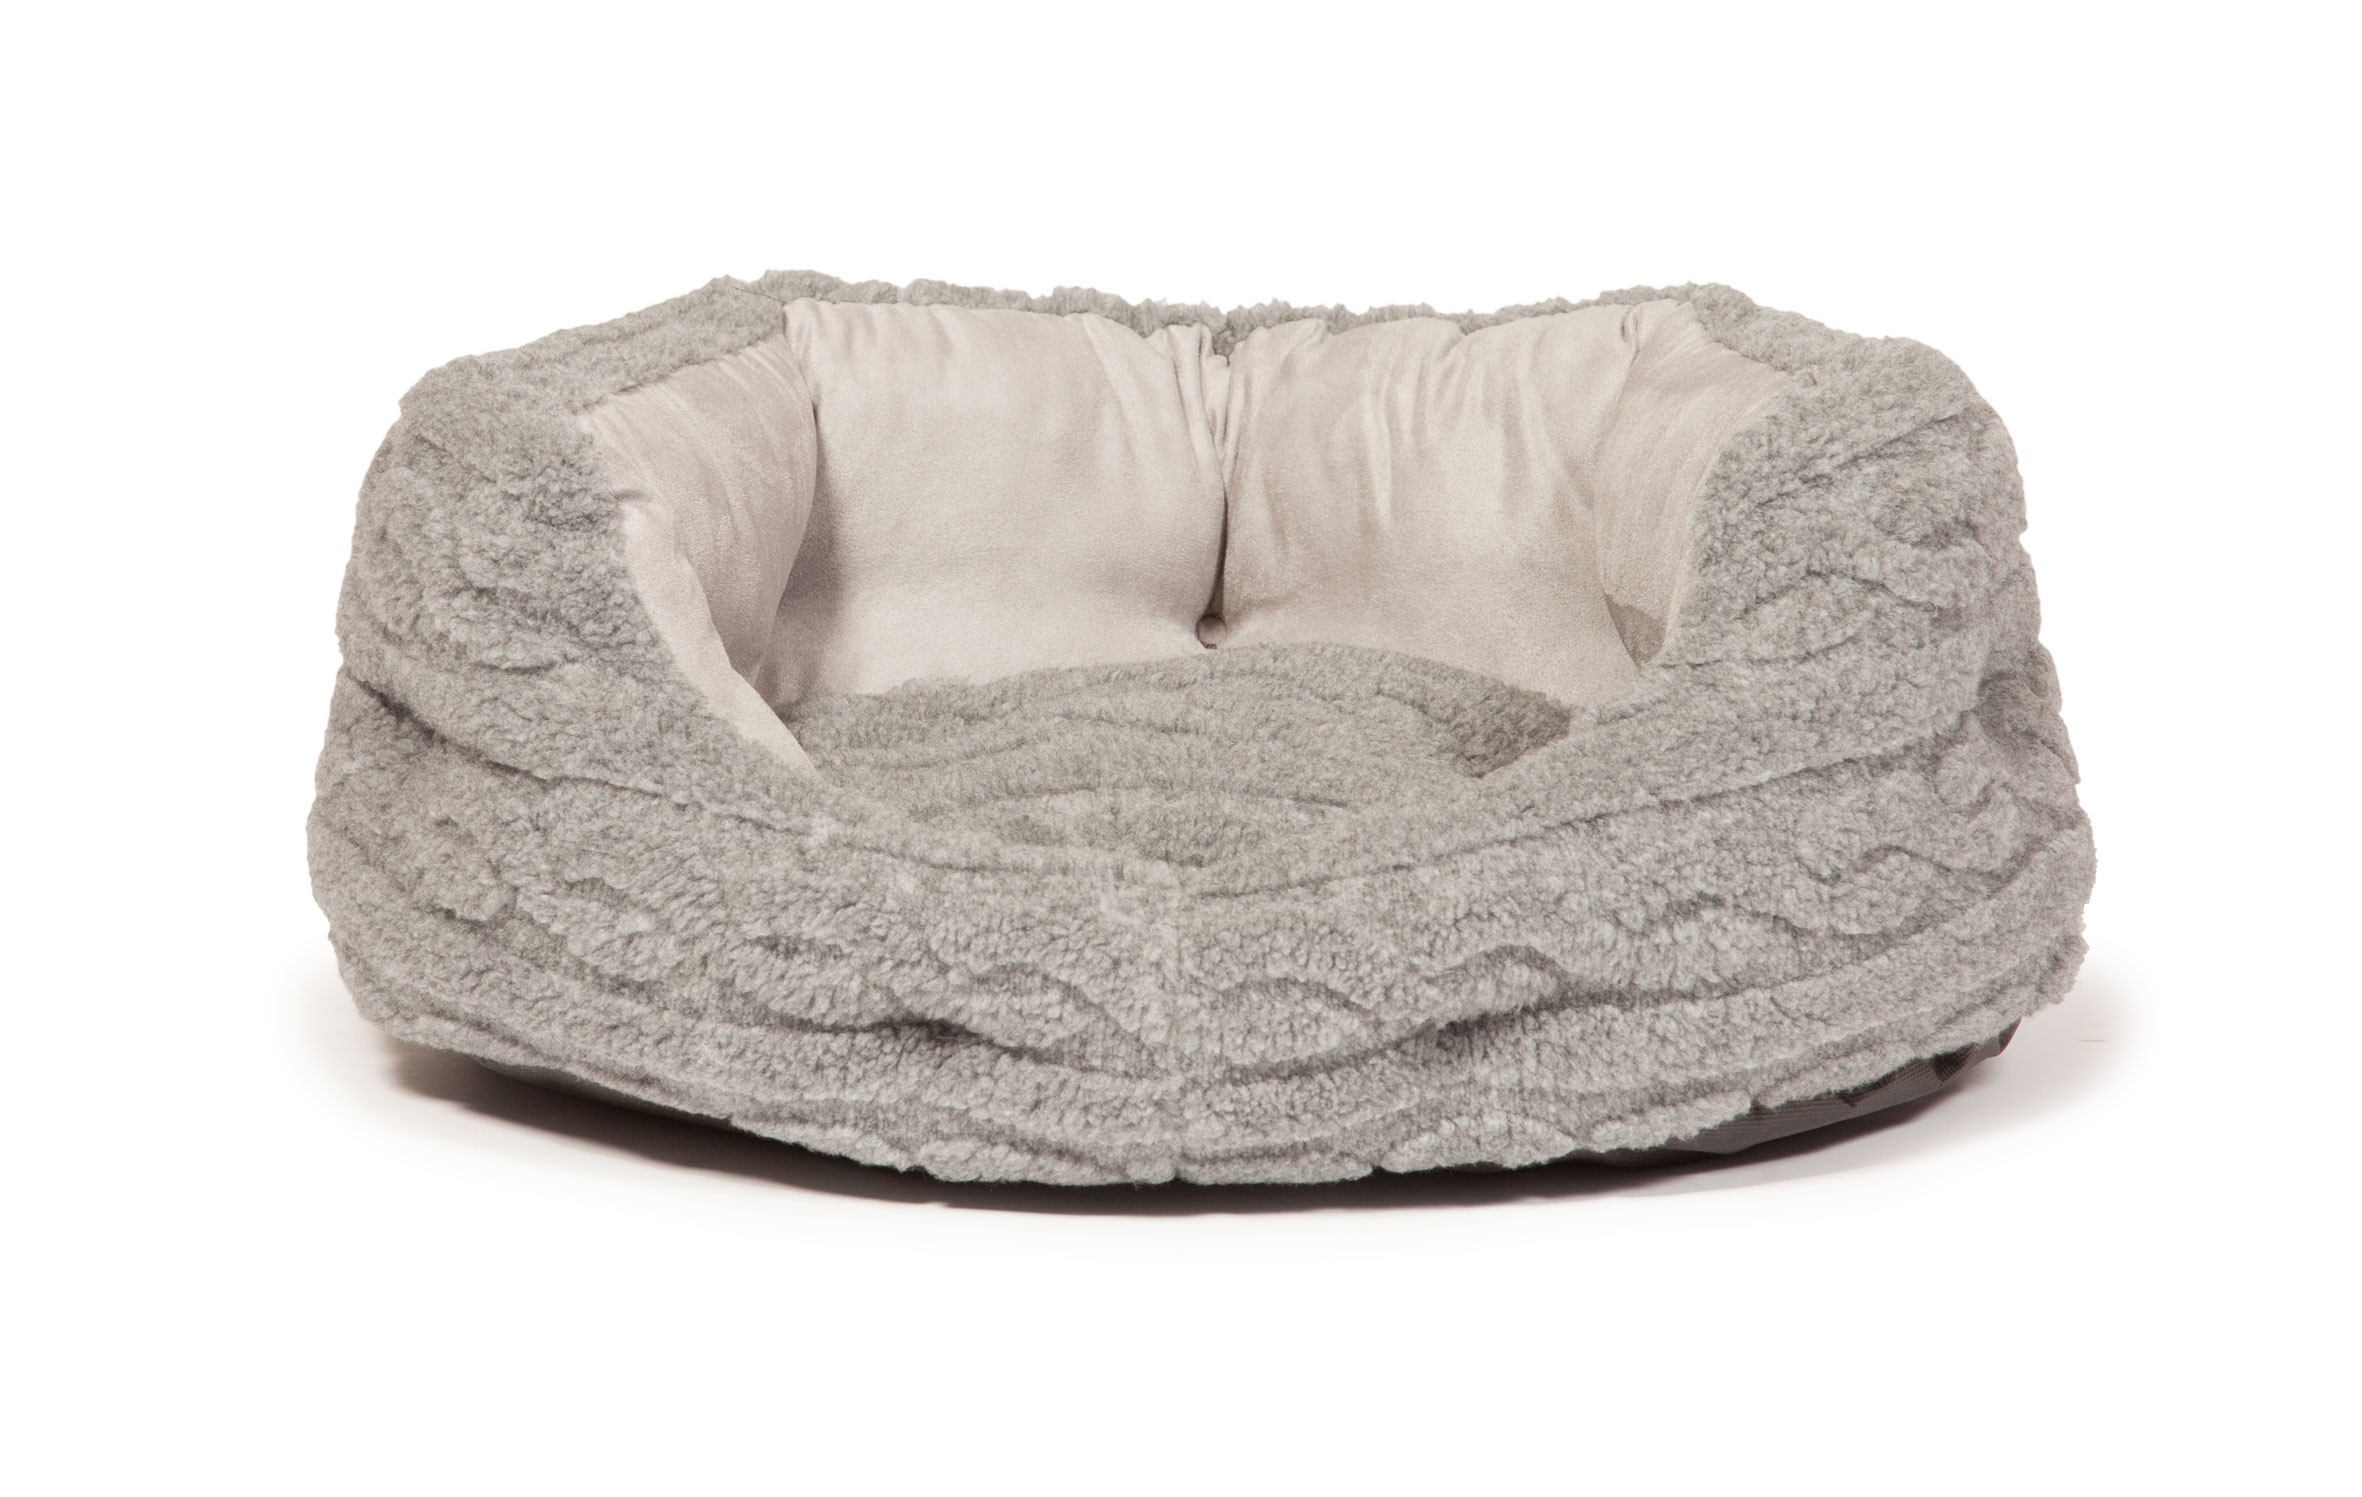 bobble_soft_pewter_deluxe_slumber_bed_5.jpg